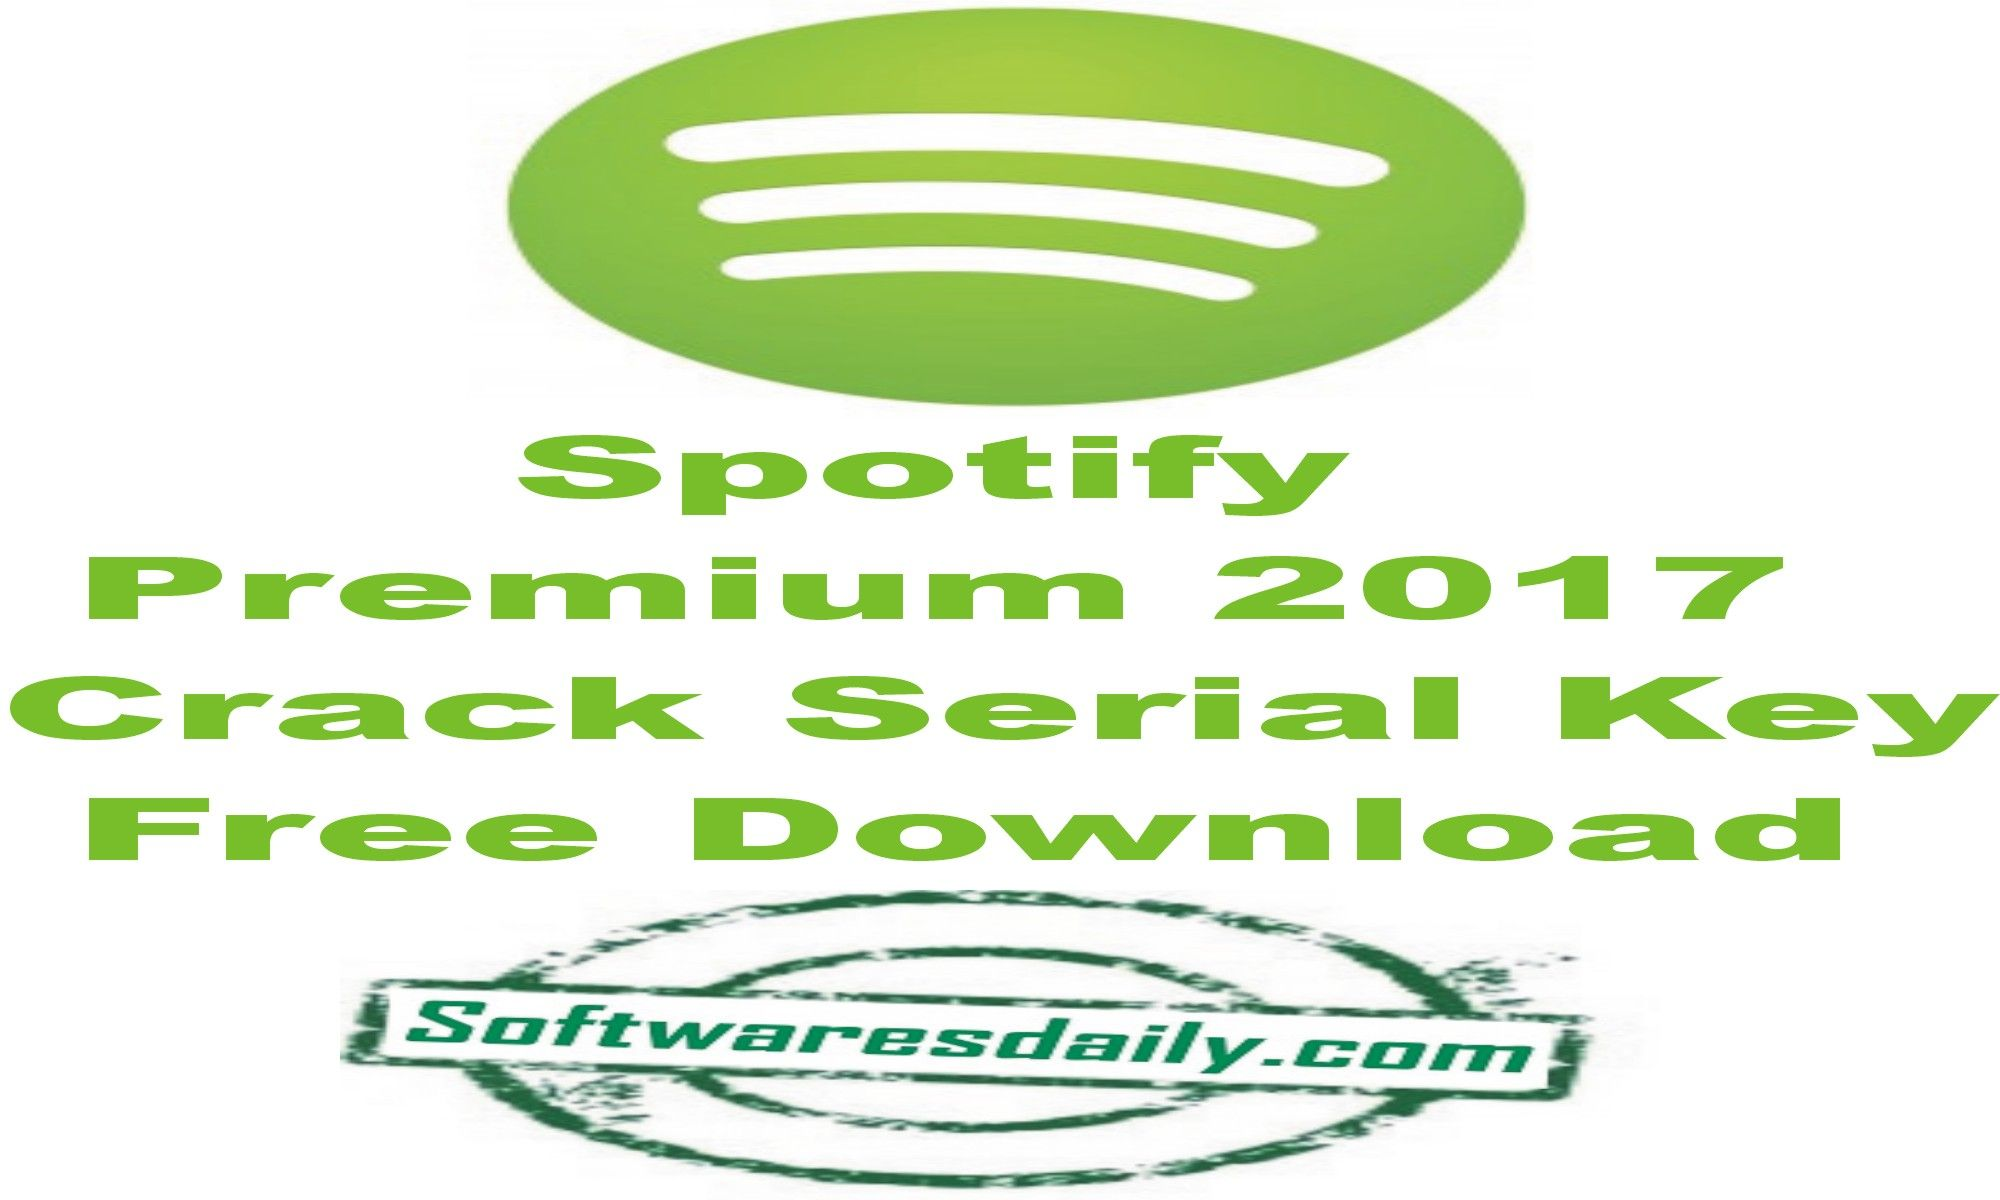 Spotify Premium 2017 Crack Serial Key Free Download Spotify